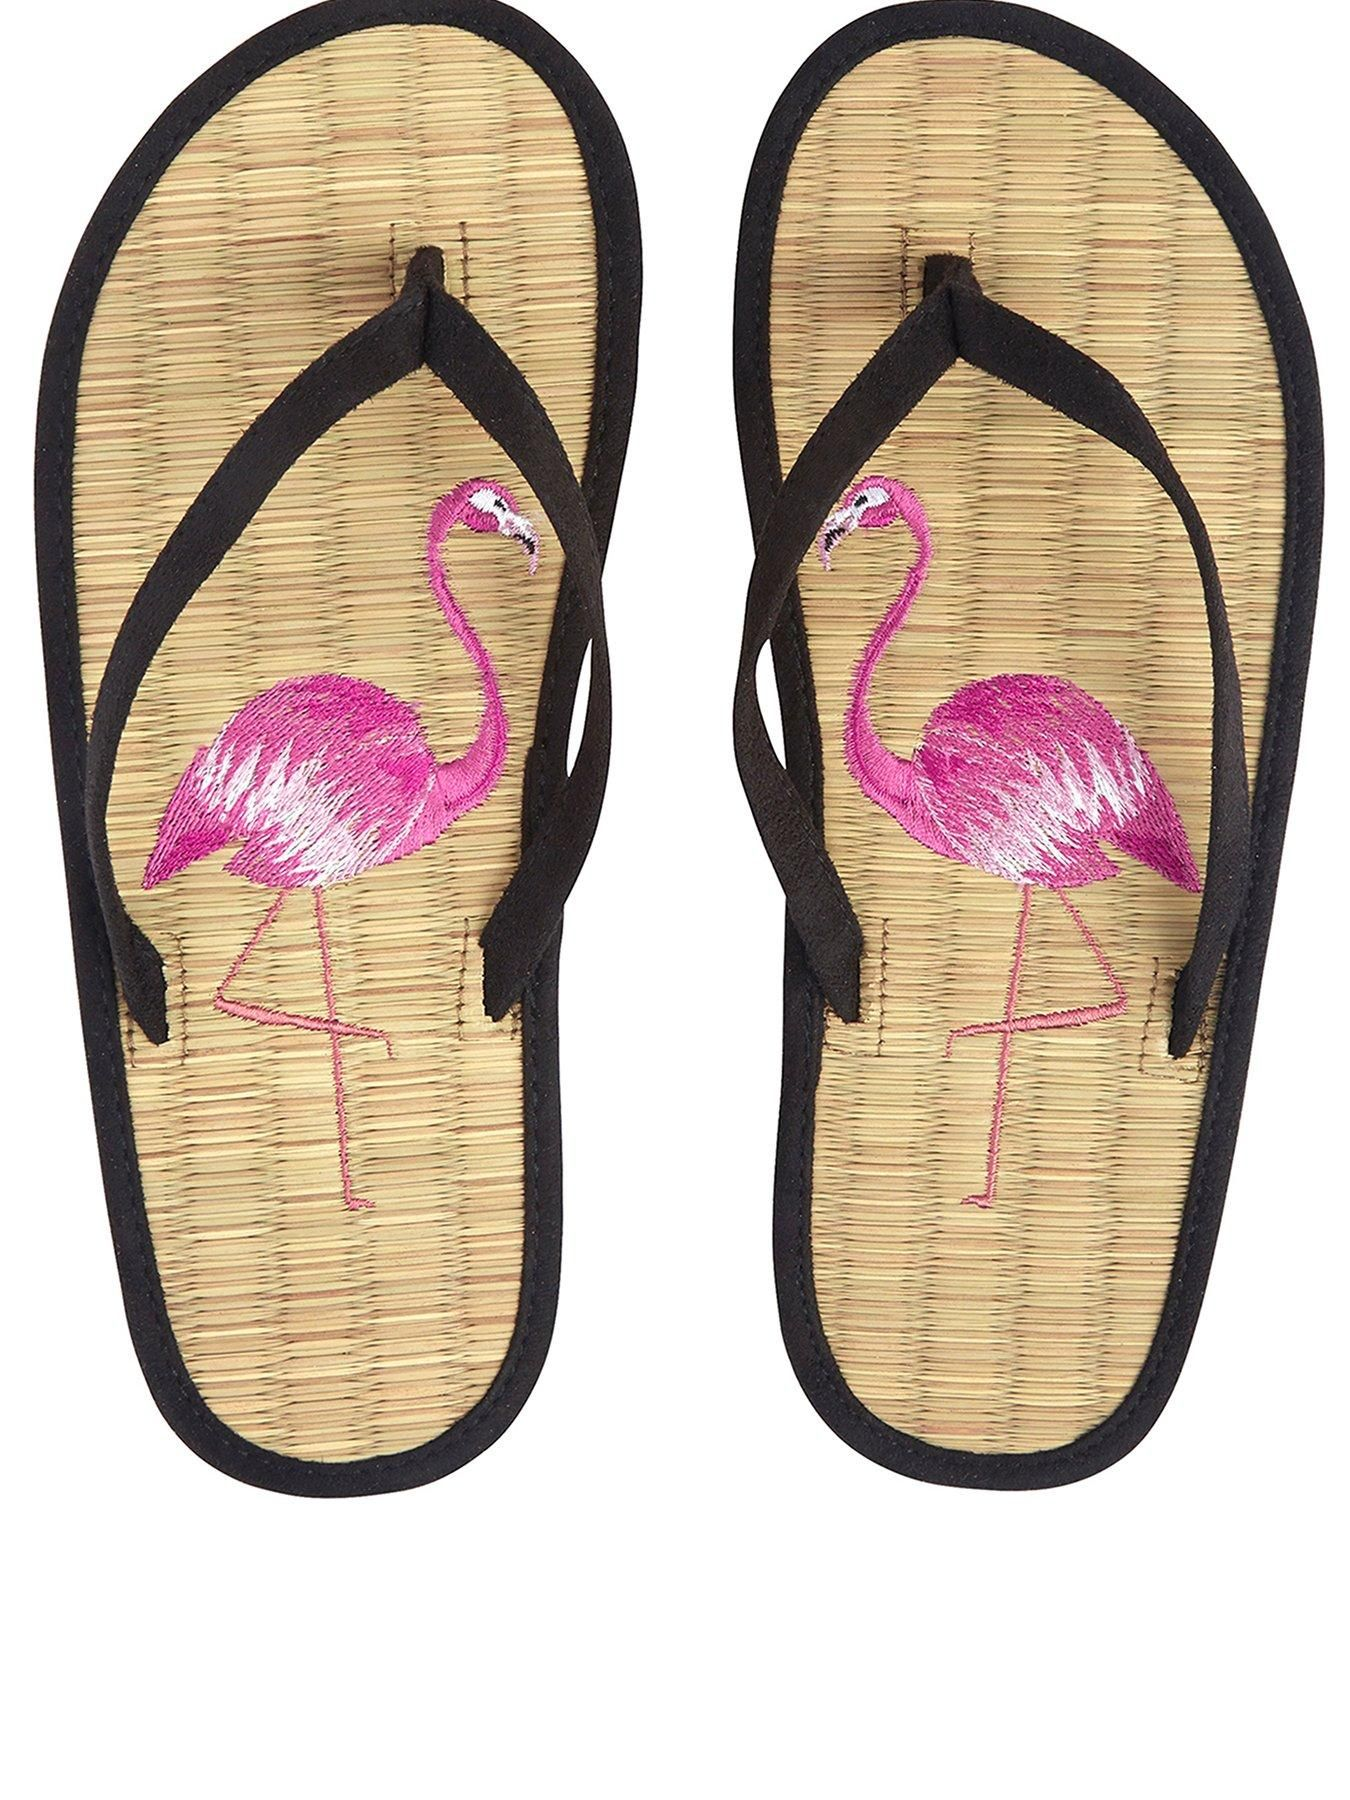 84075b222 Accessorize Flirty Flamingo Seagrass Flip Flop Sandal